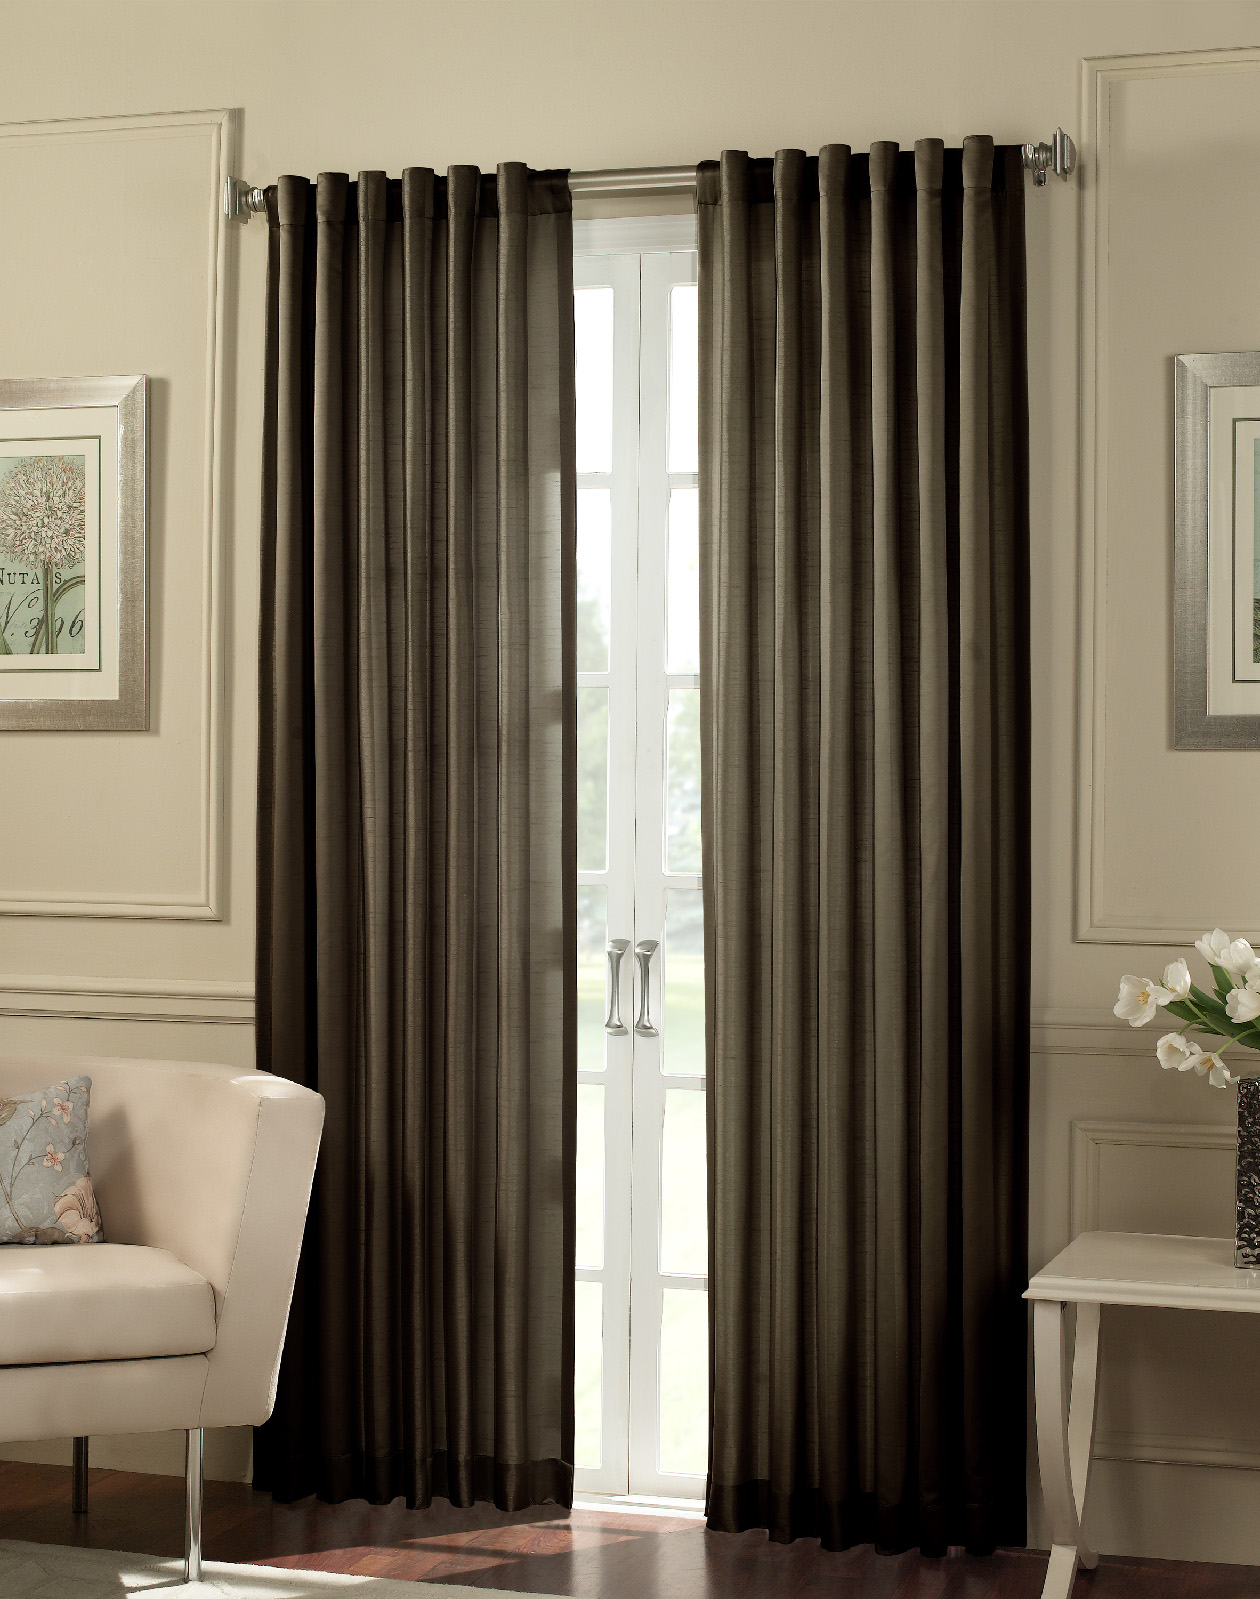 Types of curtains styles - Types Of Curtains Tops Saturday January 26 2013